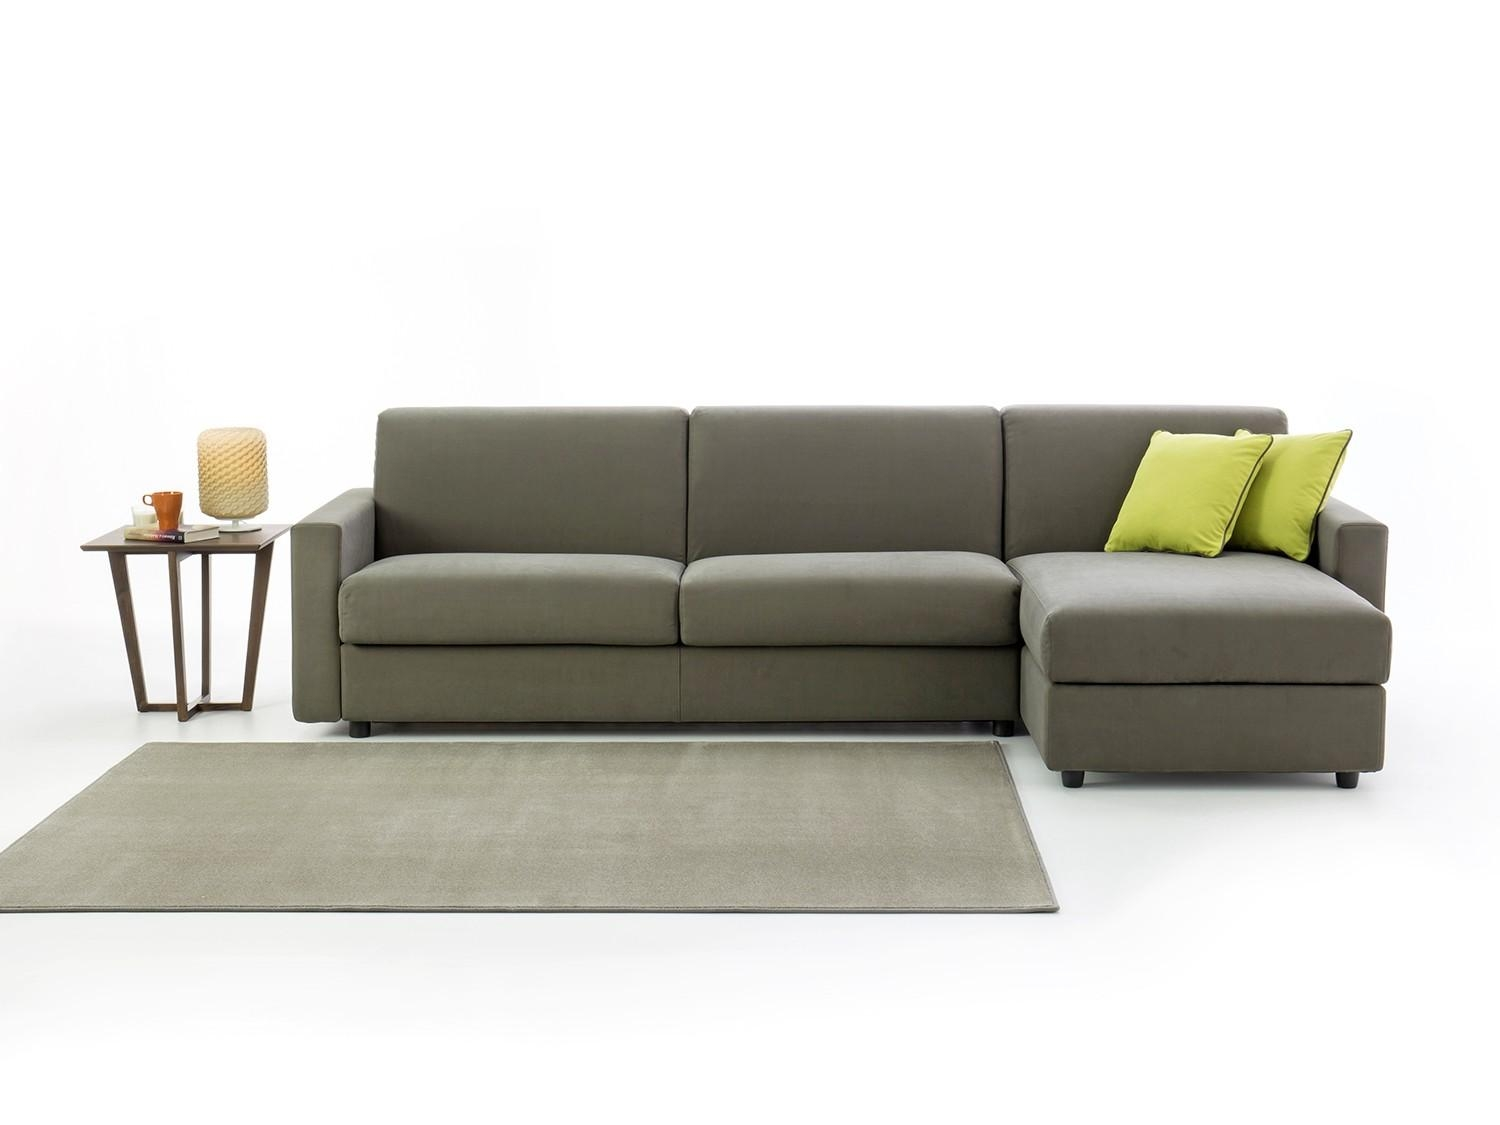 Sofa Bed Chaise With Storage | Tehranmix Decoration Within Chaise Sofa Beds With Storage (View 5 of 20)